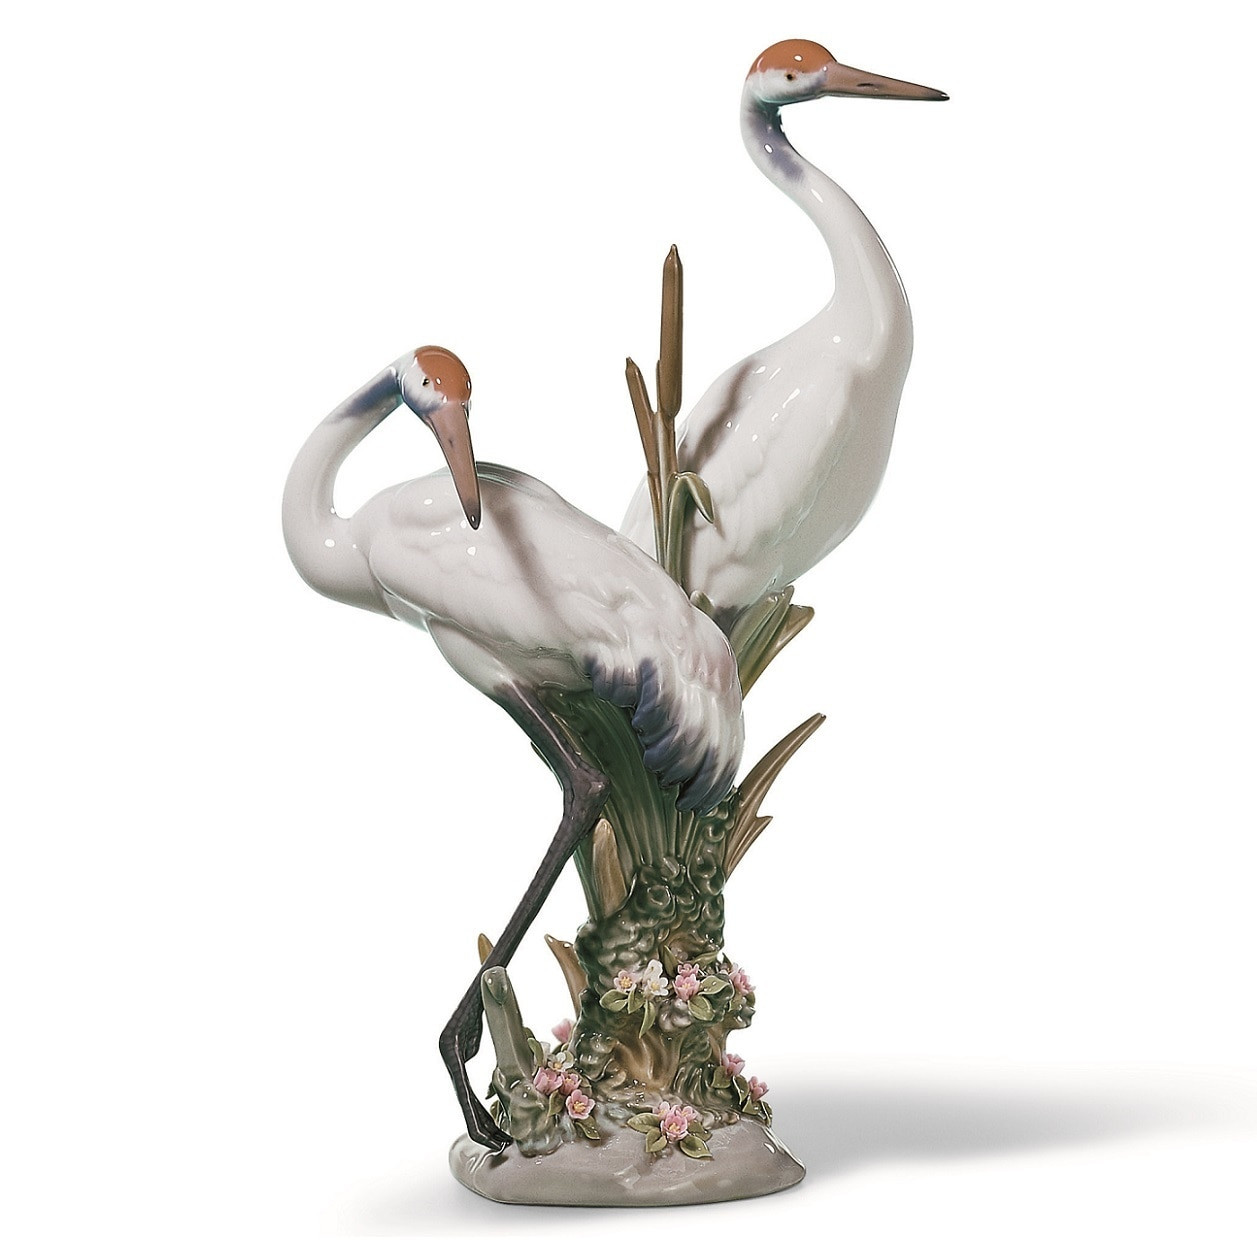 lladro vase flowers of courting cranes porcelain sculpture lladro courting cranes figurine inside courting cranes porcelain figurine lladro 1001611